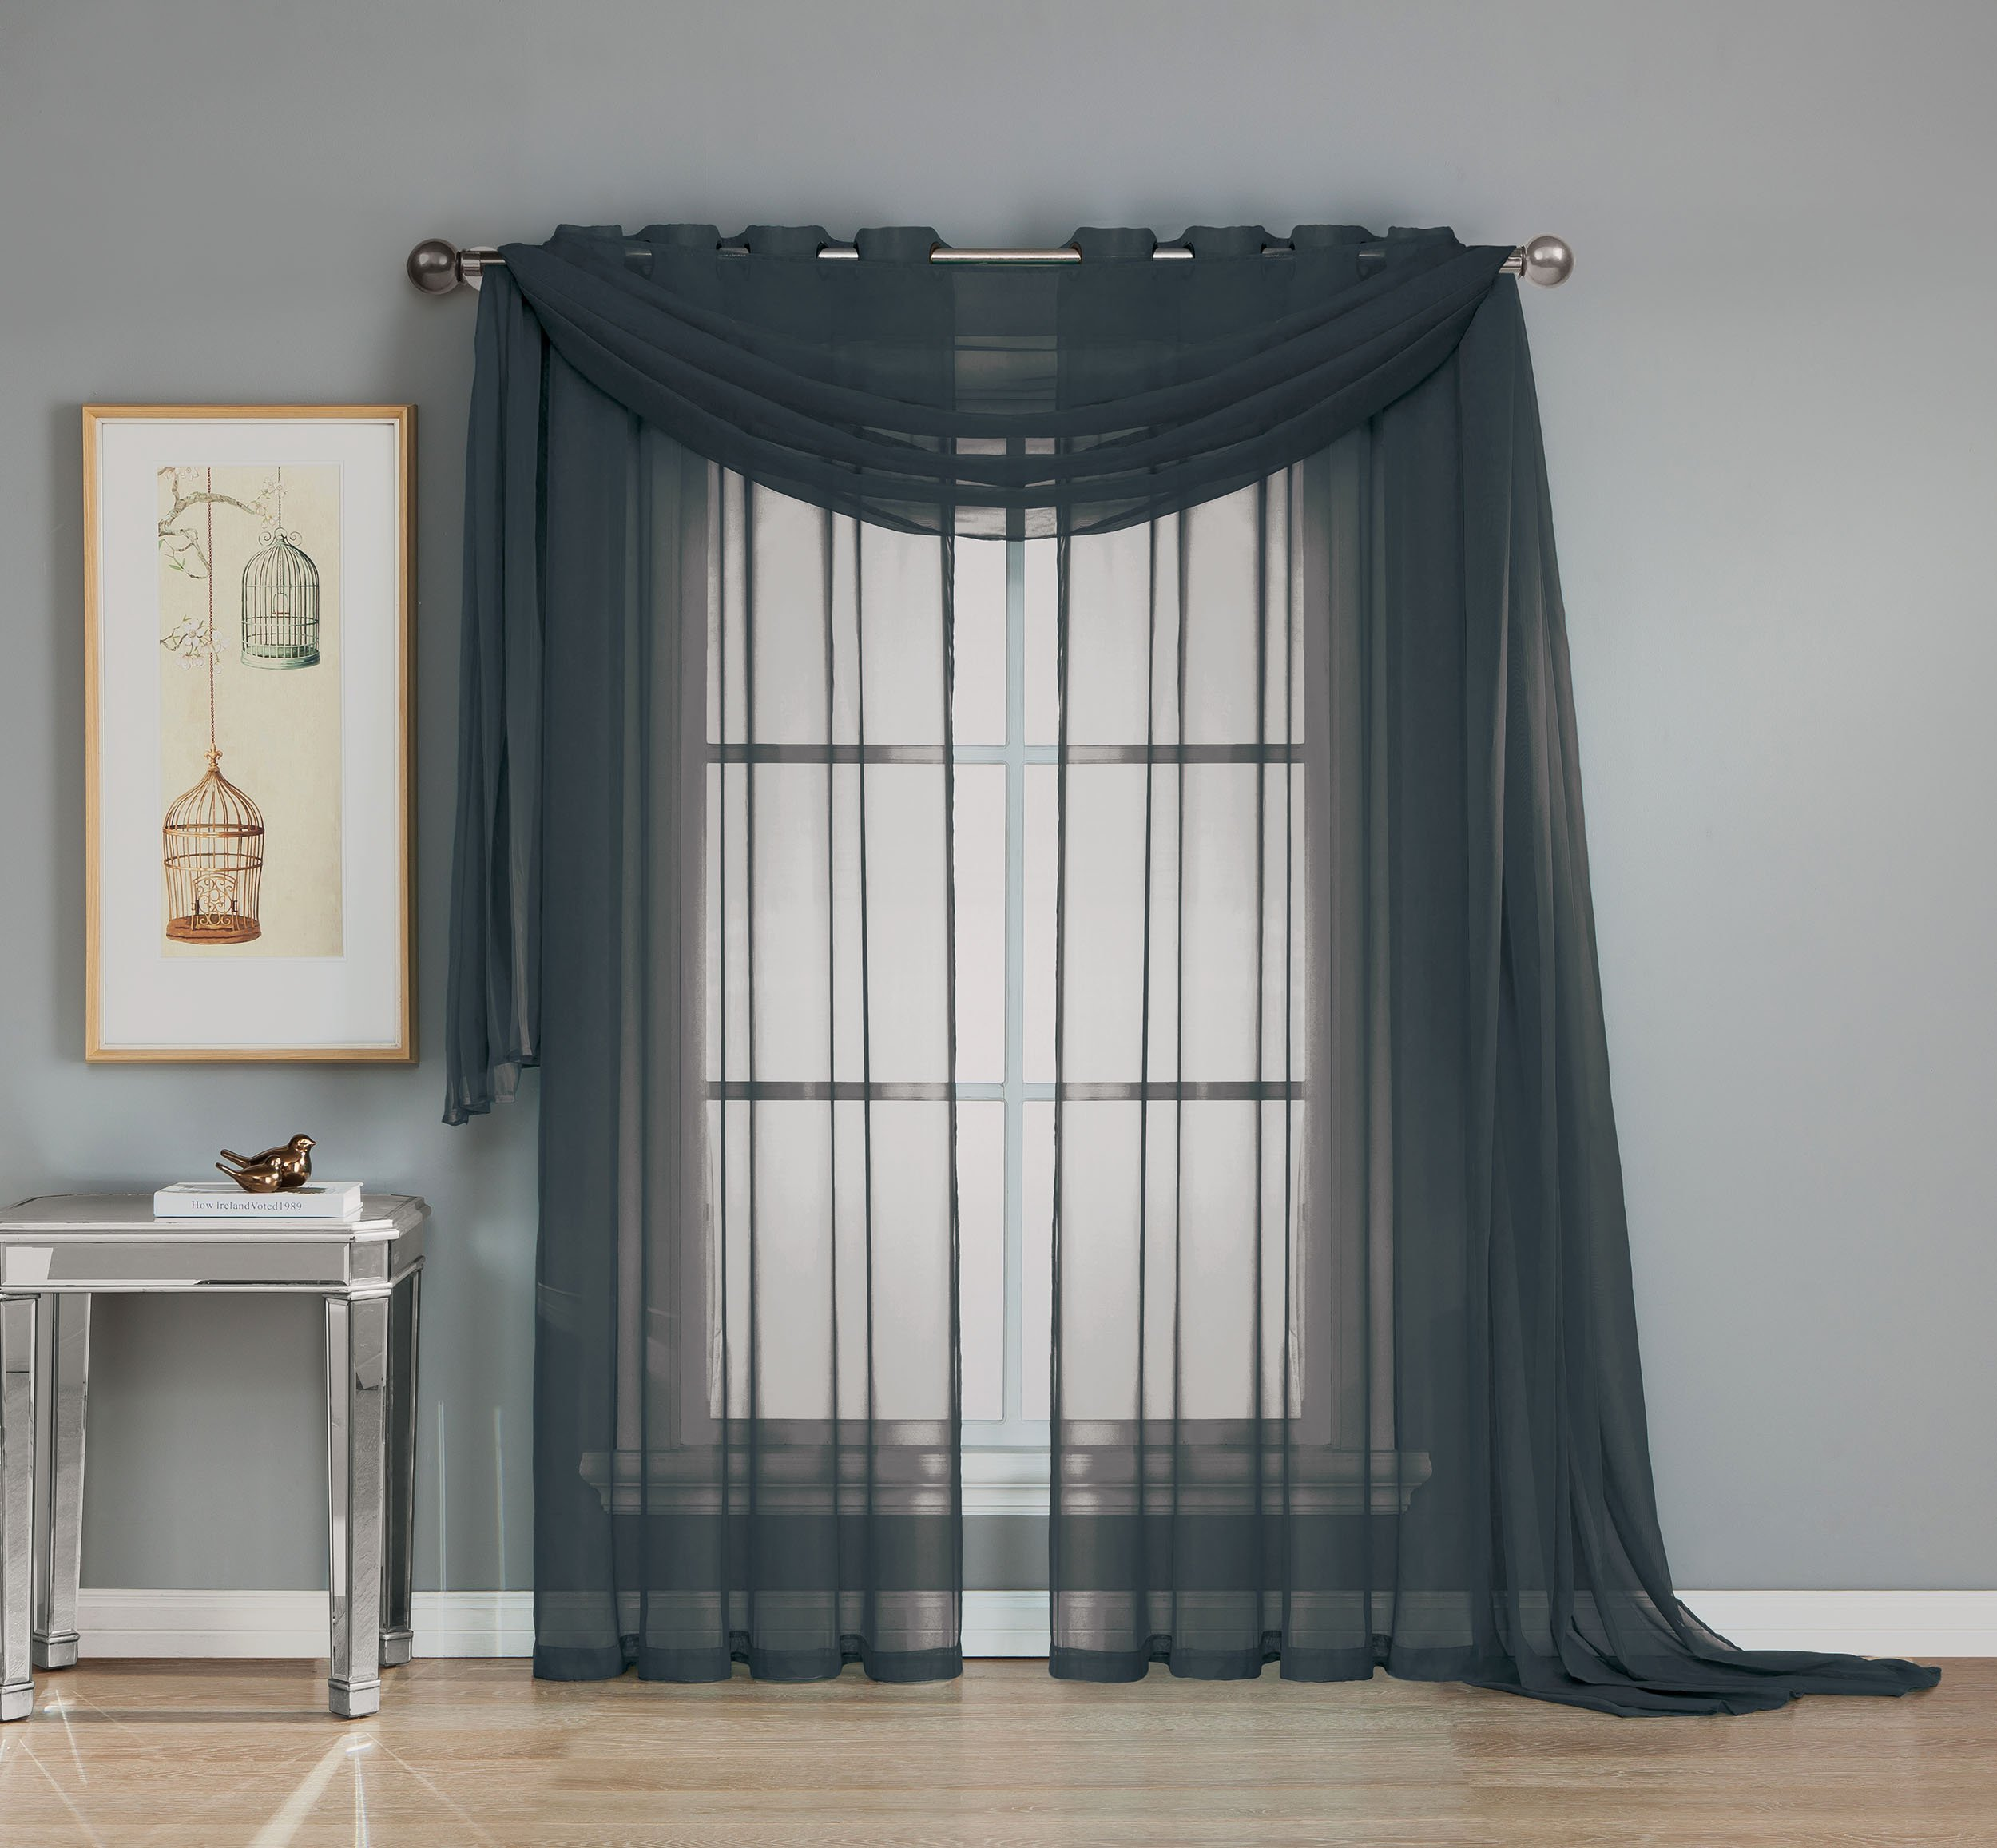 "Window Elements Diamond Sheer Voile Extra Wide 56 x 90 in. Grommet Curtain Panel, Black - Includes (1) unlined 56"" W x 90"" L curtain panel Each panel features (8) brass-colored grommets 2.5"" reinforced metal grommets fit up to a 1.5"" curtain rod (curtain rod sold separately) - living-room-soft-furnishings, living-room, draperies-curtains-shades - 81mFDncwOXL -"